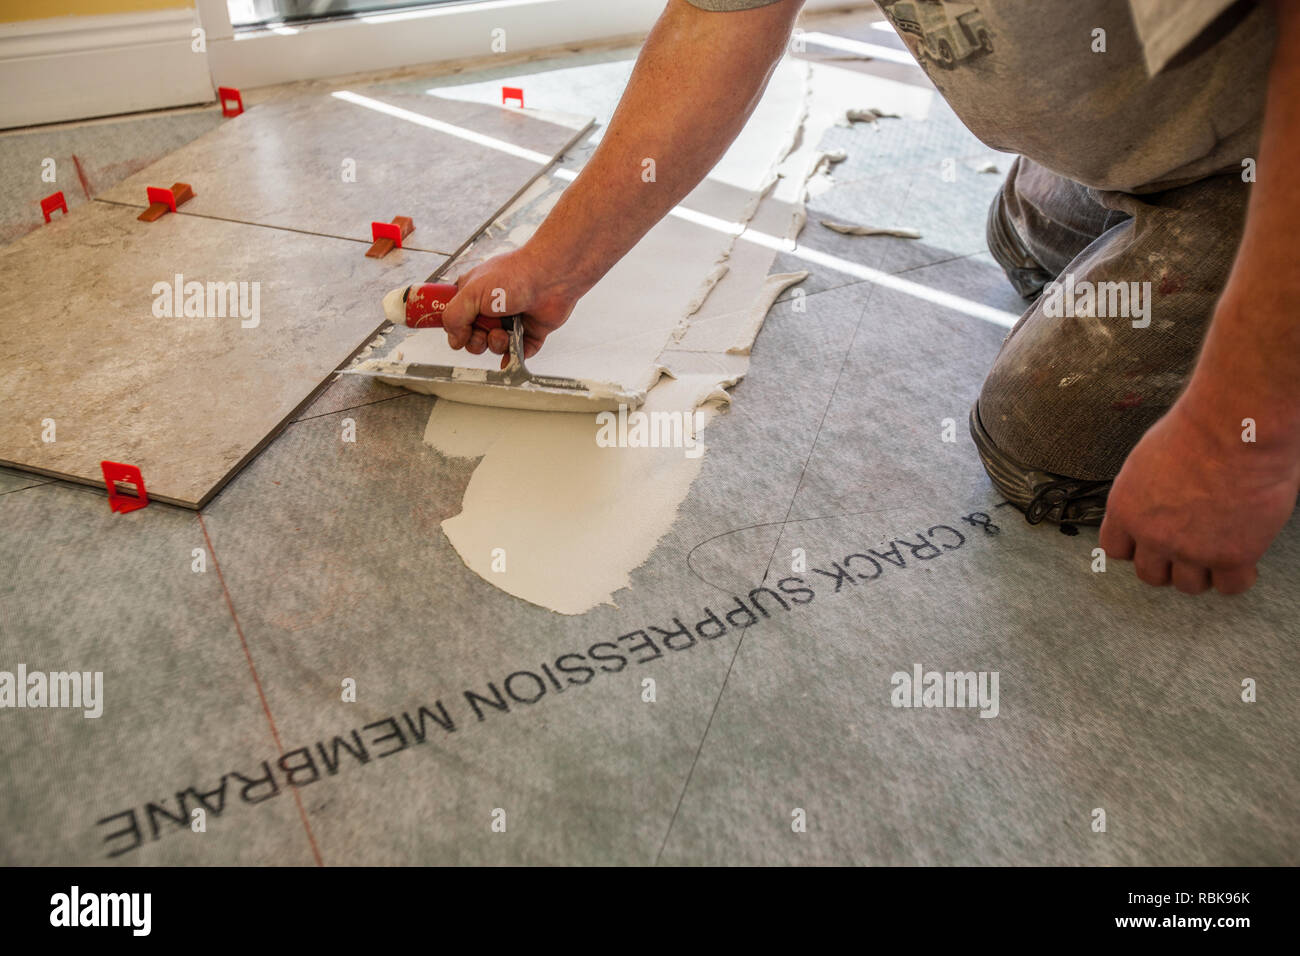 Man Using Trowel To Spread Tile Adhesive - Stock Image